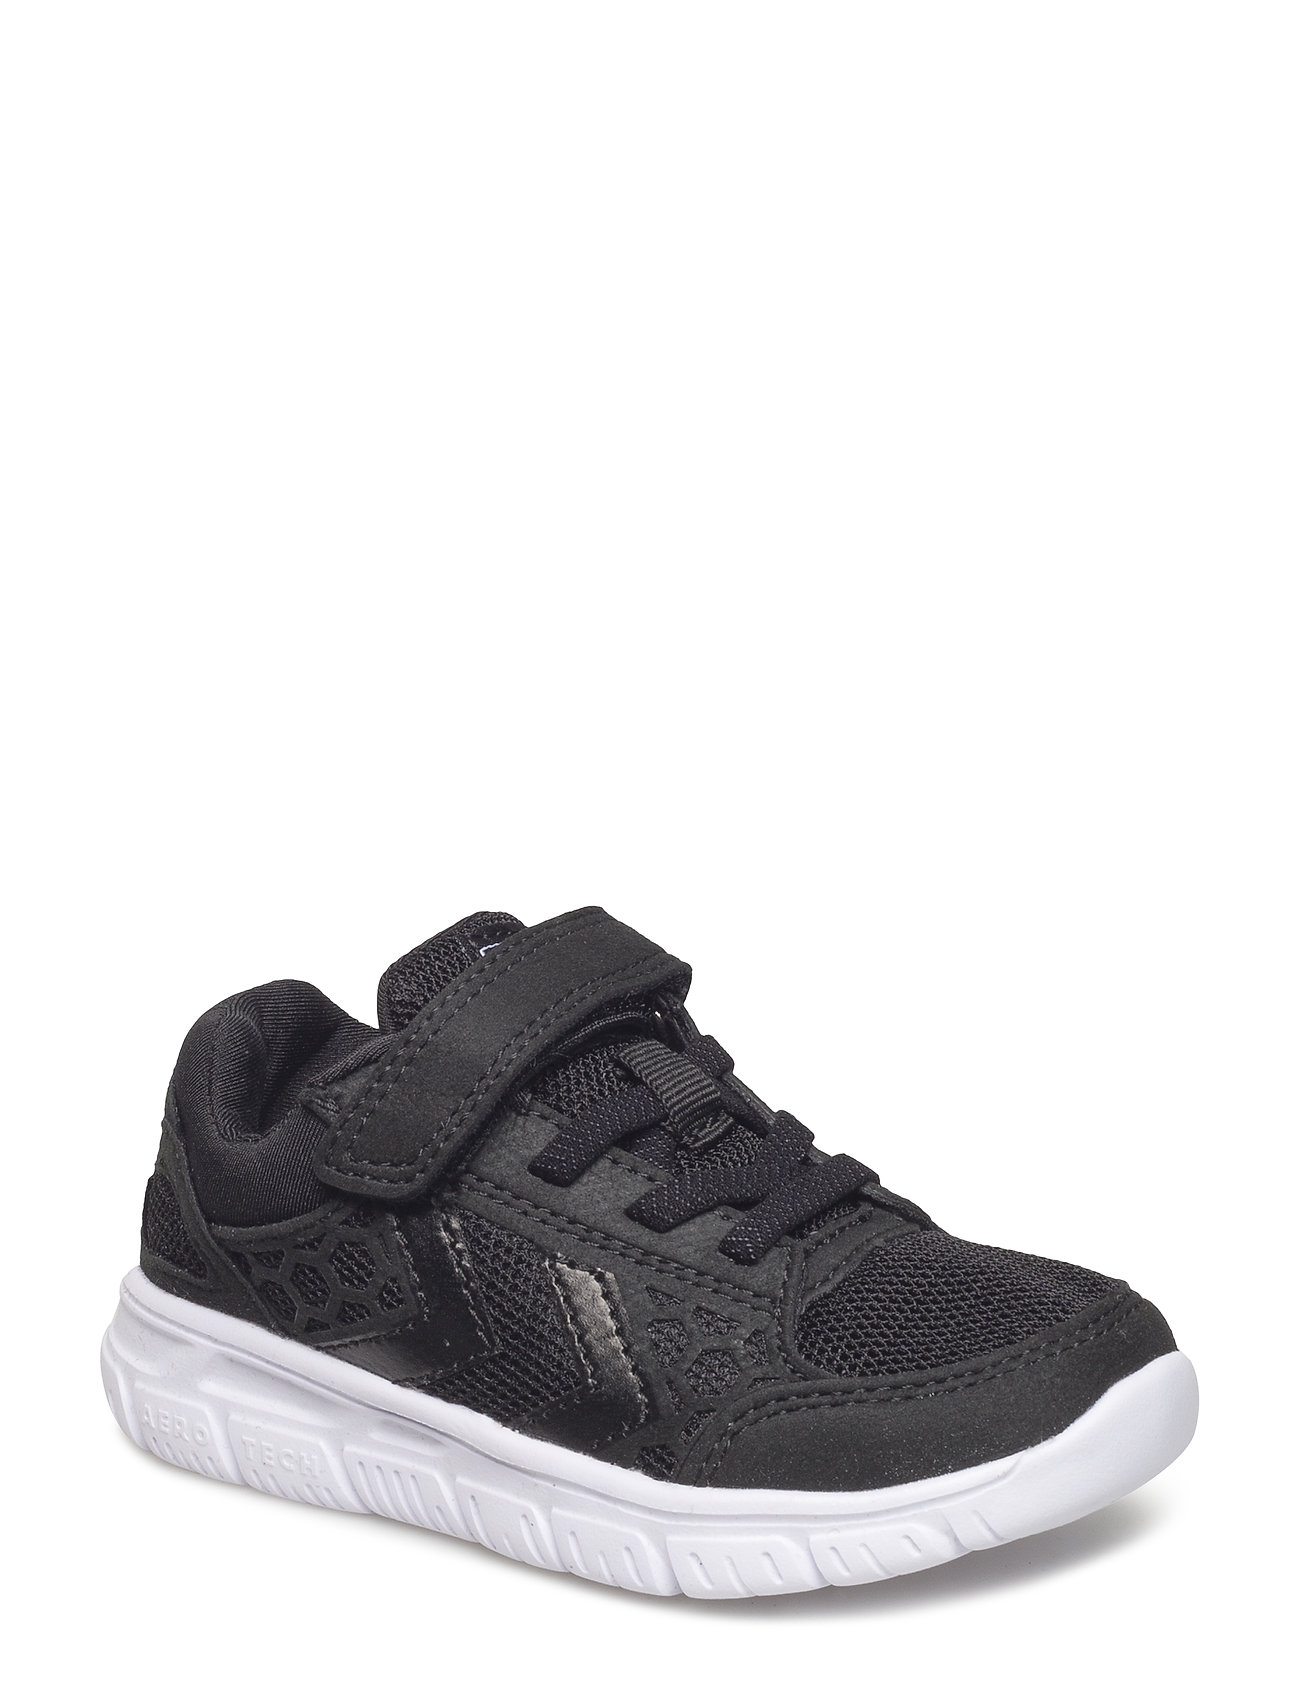 Hummel CROSSLITE SNEAKER JR - BLACK/WHITE